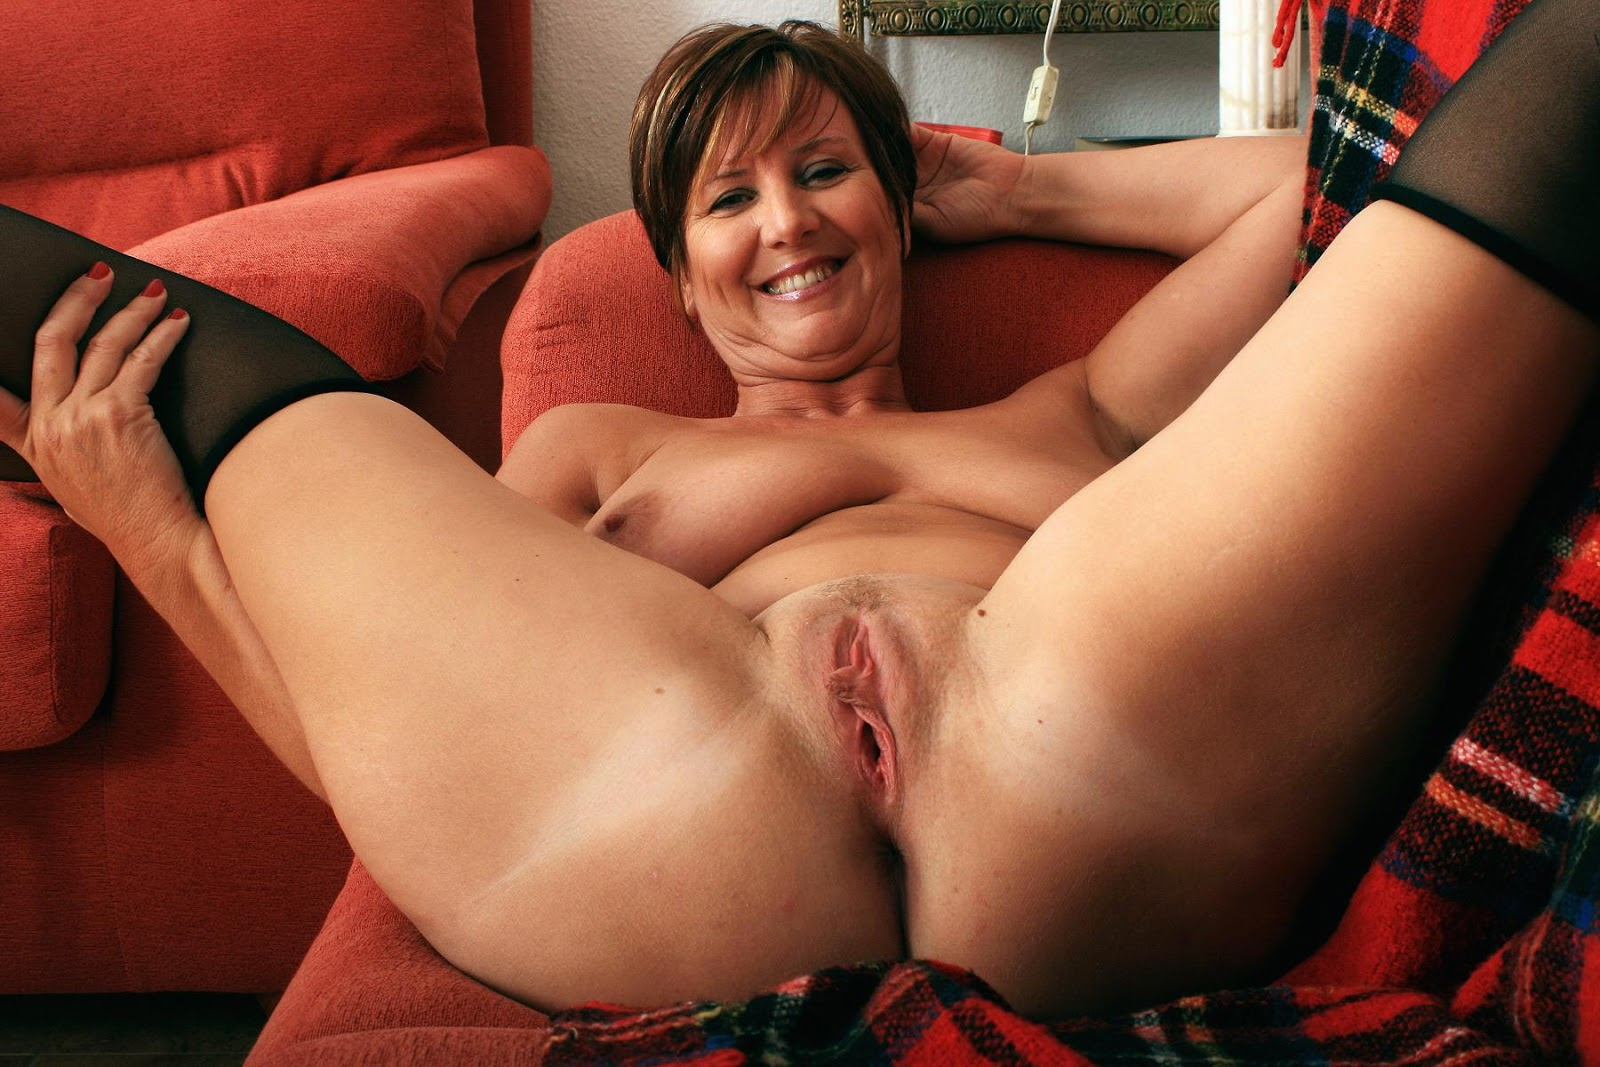 Amateur mature woman with big tits